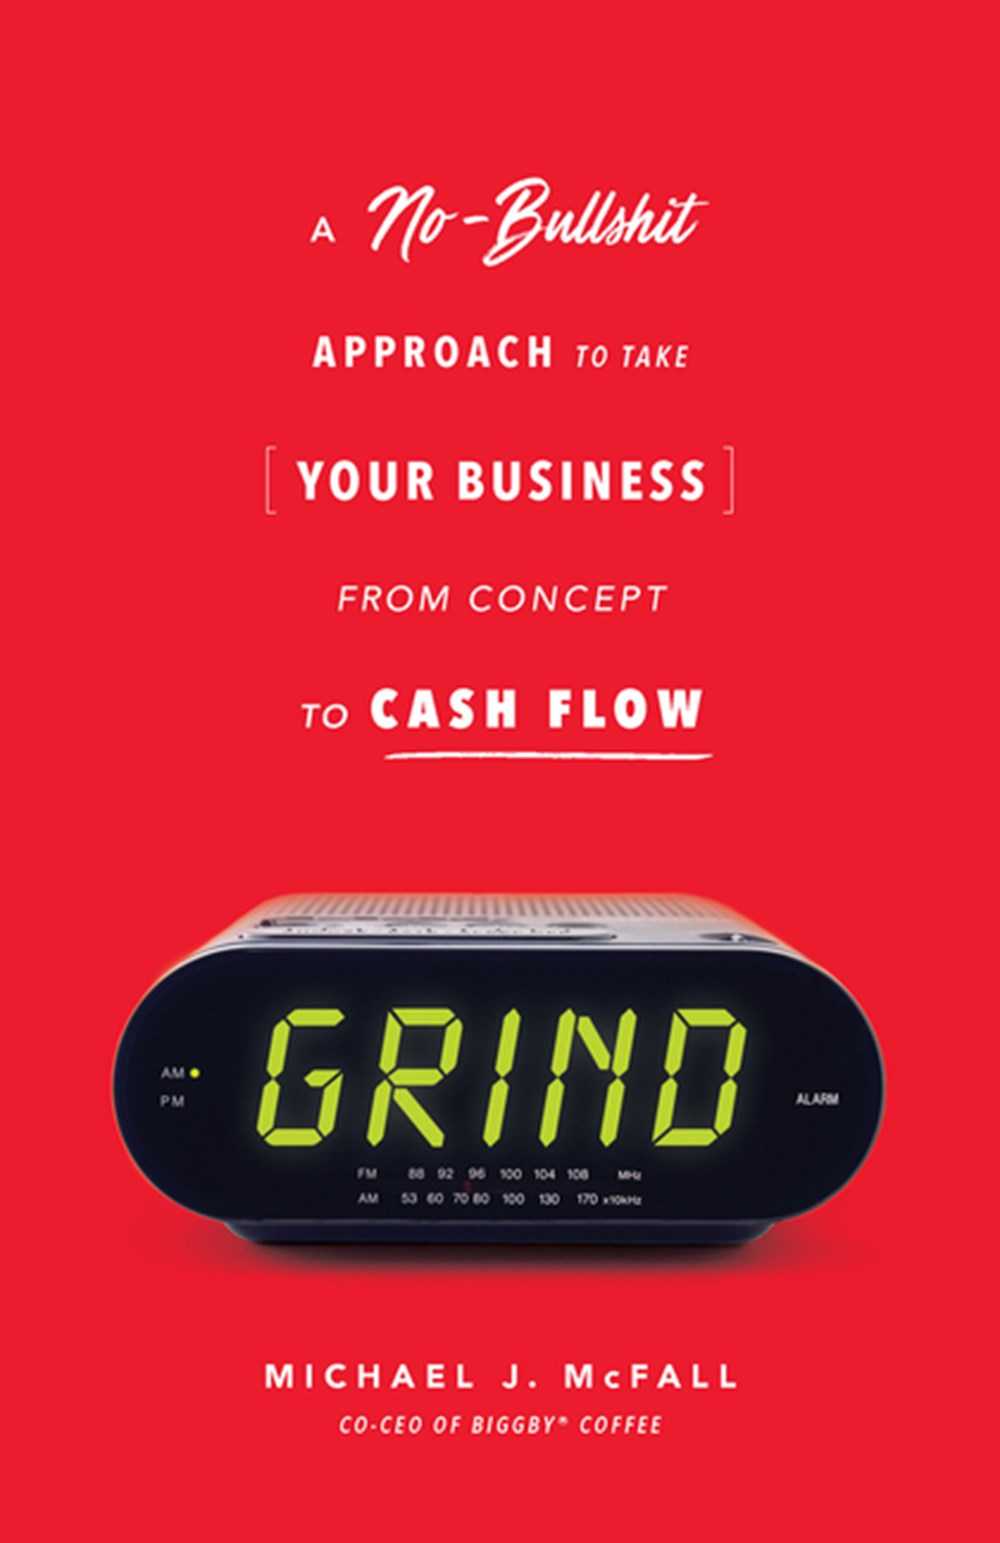 Grind A No-Bullshit Approach to Take Your Business from Concept to Cash Flow